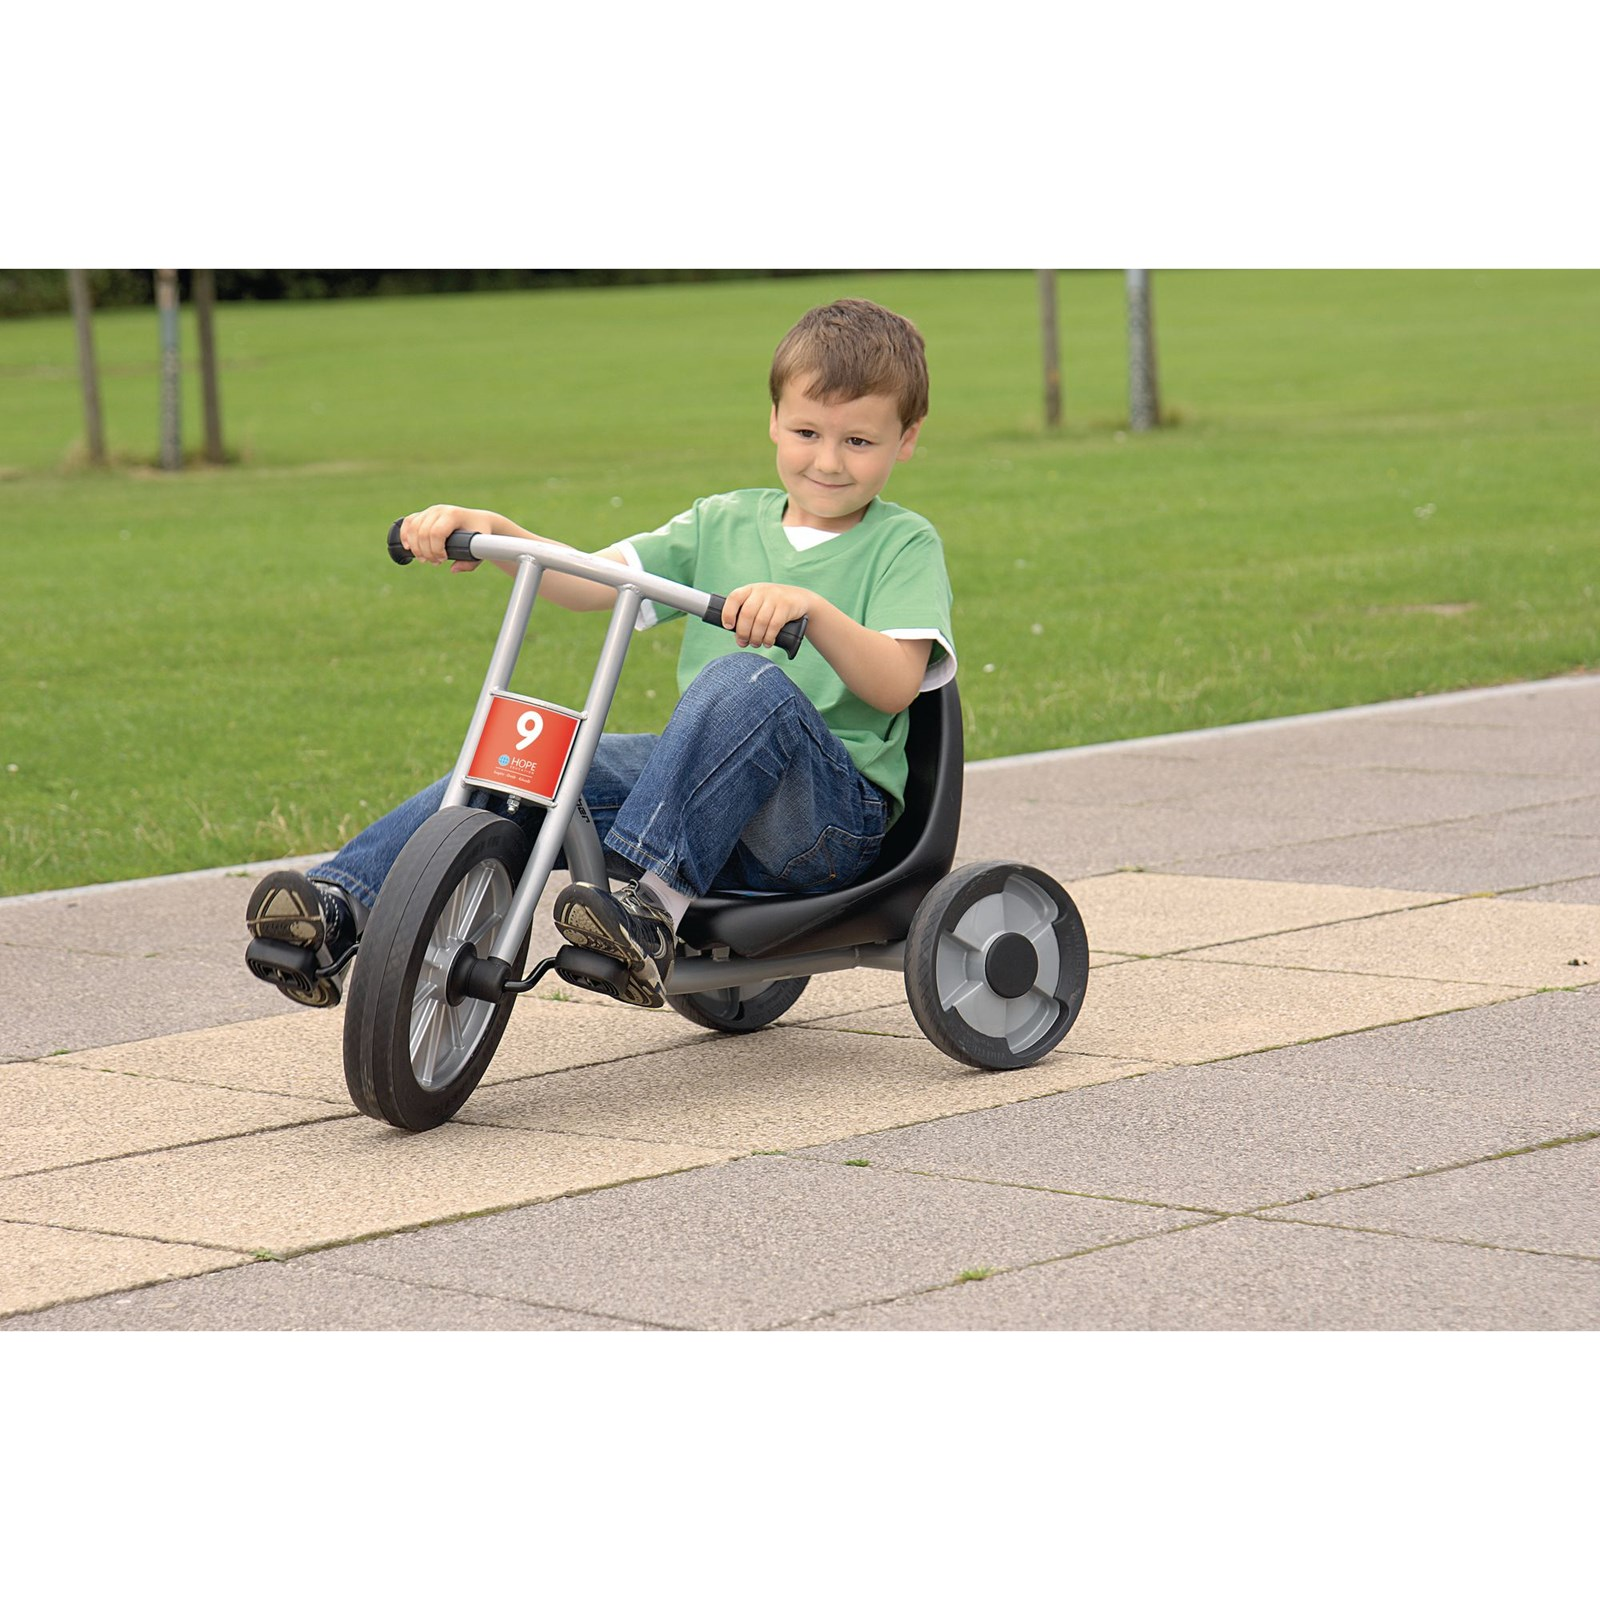 Winther Low Rider Trike